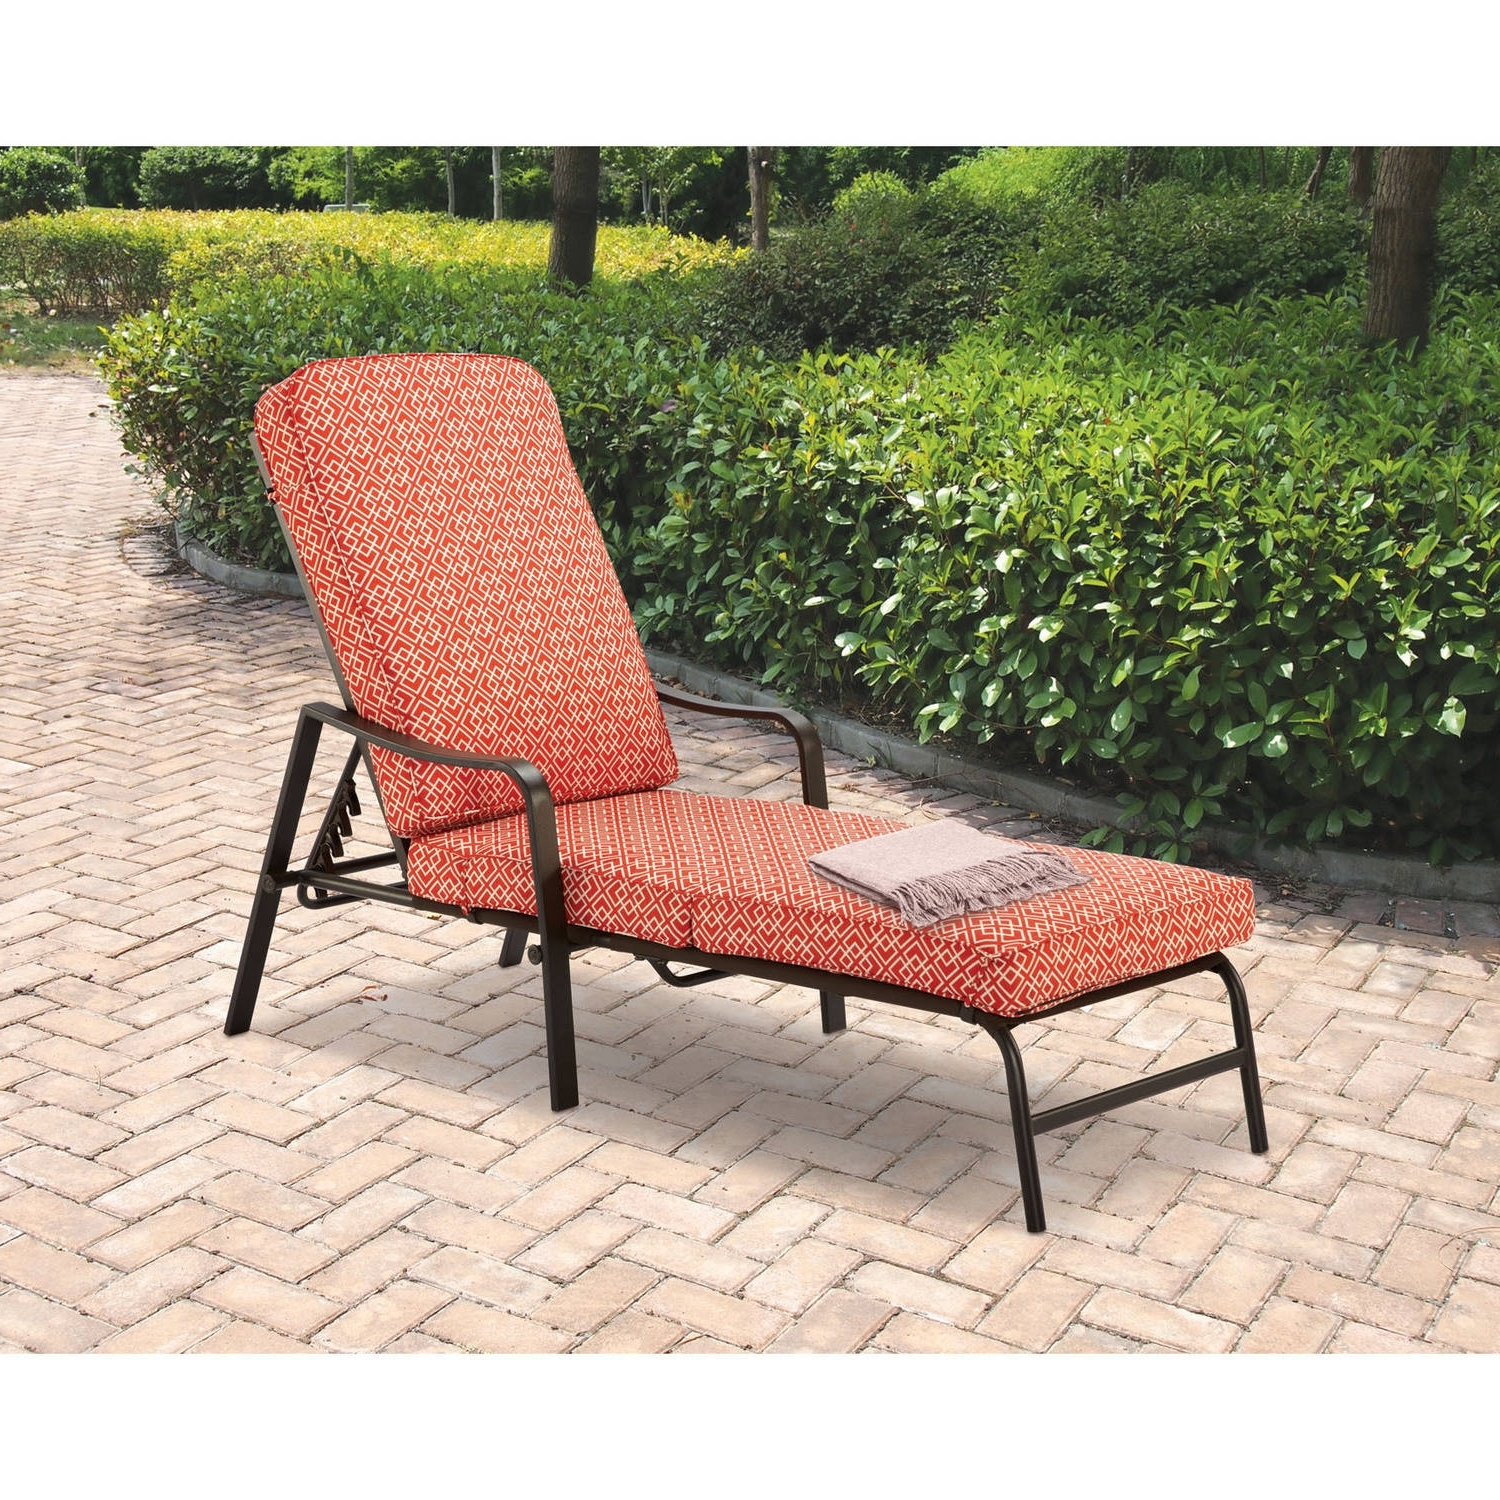 Well Known Outdoor Chaise Lounges Inside Mainstays Outdoor Chaise Lounge, Orange Geo Pattern – Walmart (View 14 of 15)